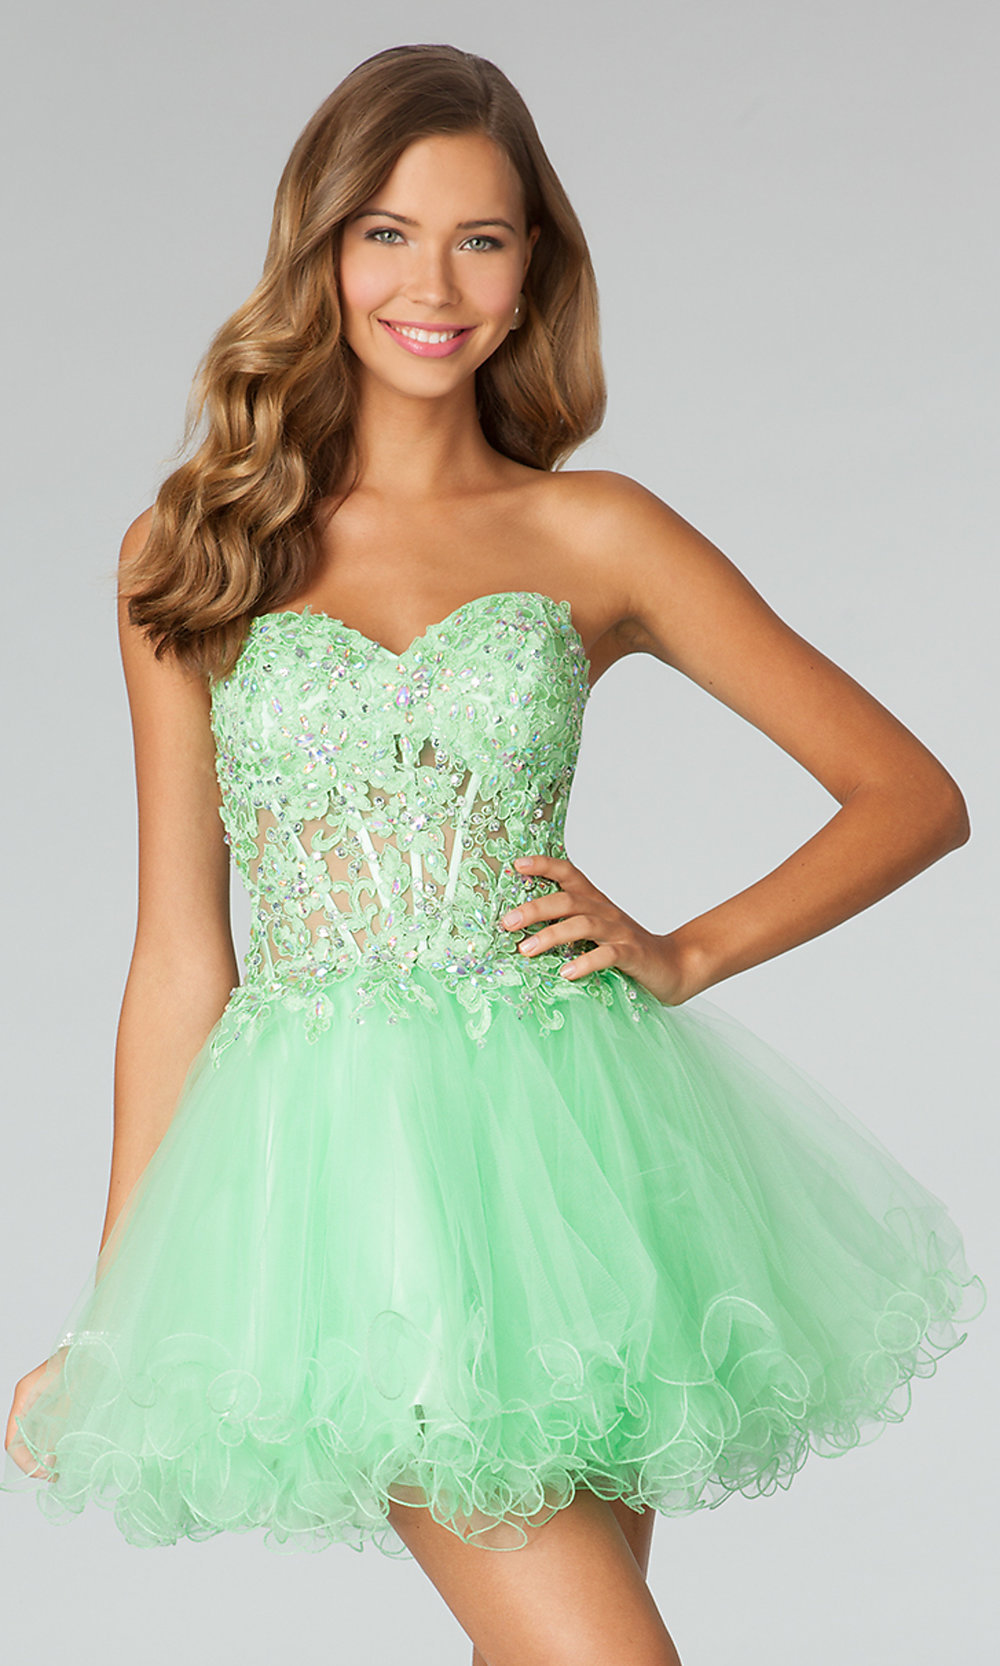 Baby Doll Prom Dress Jovani Strapless Corset Dresses